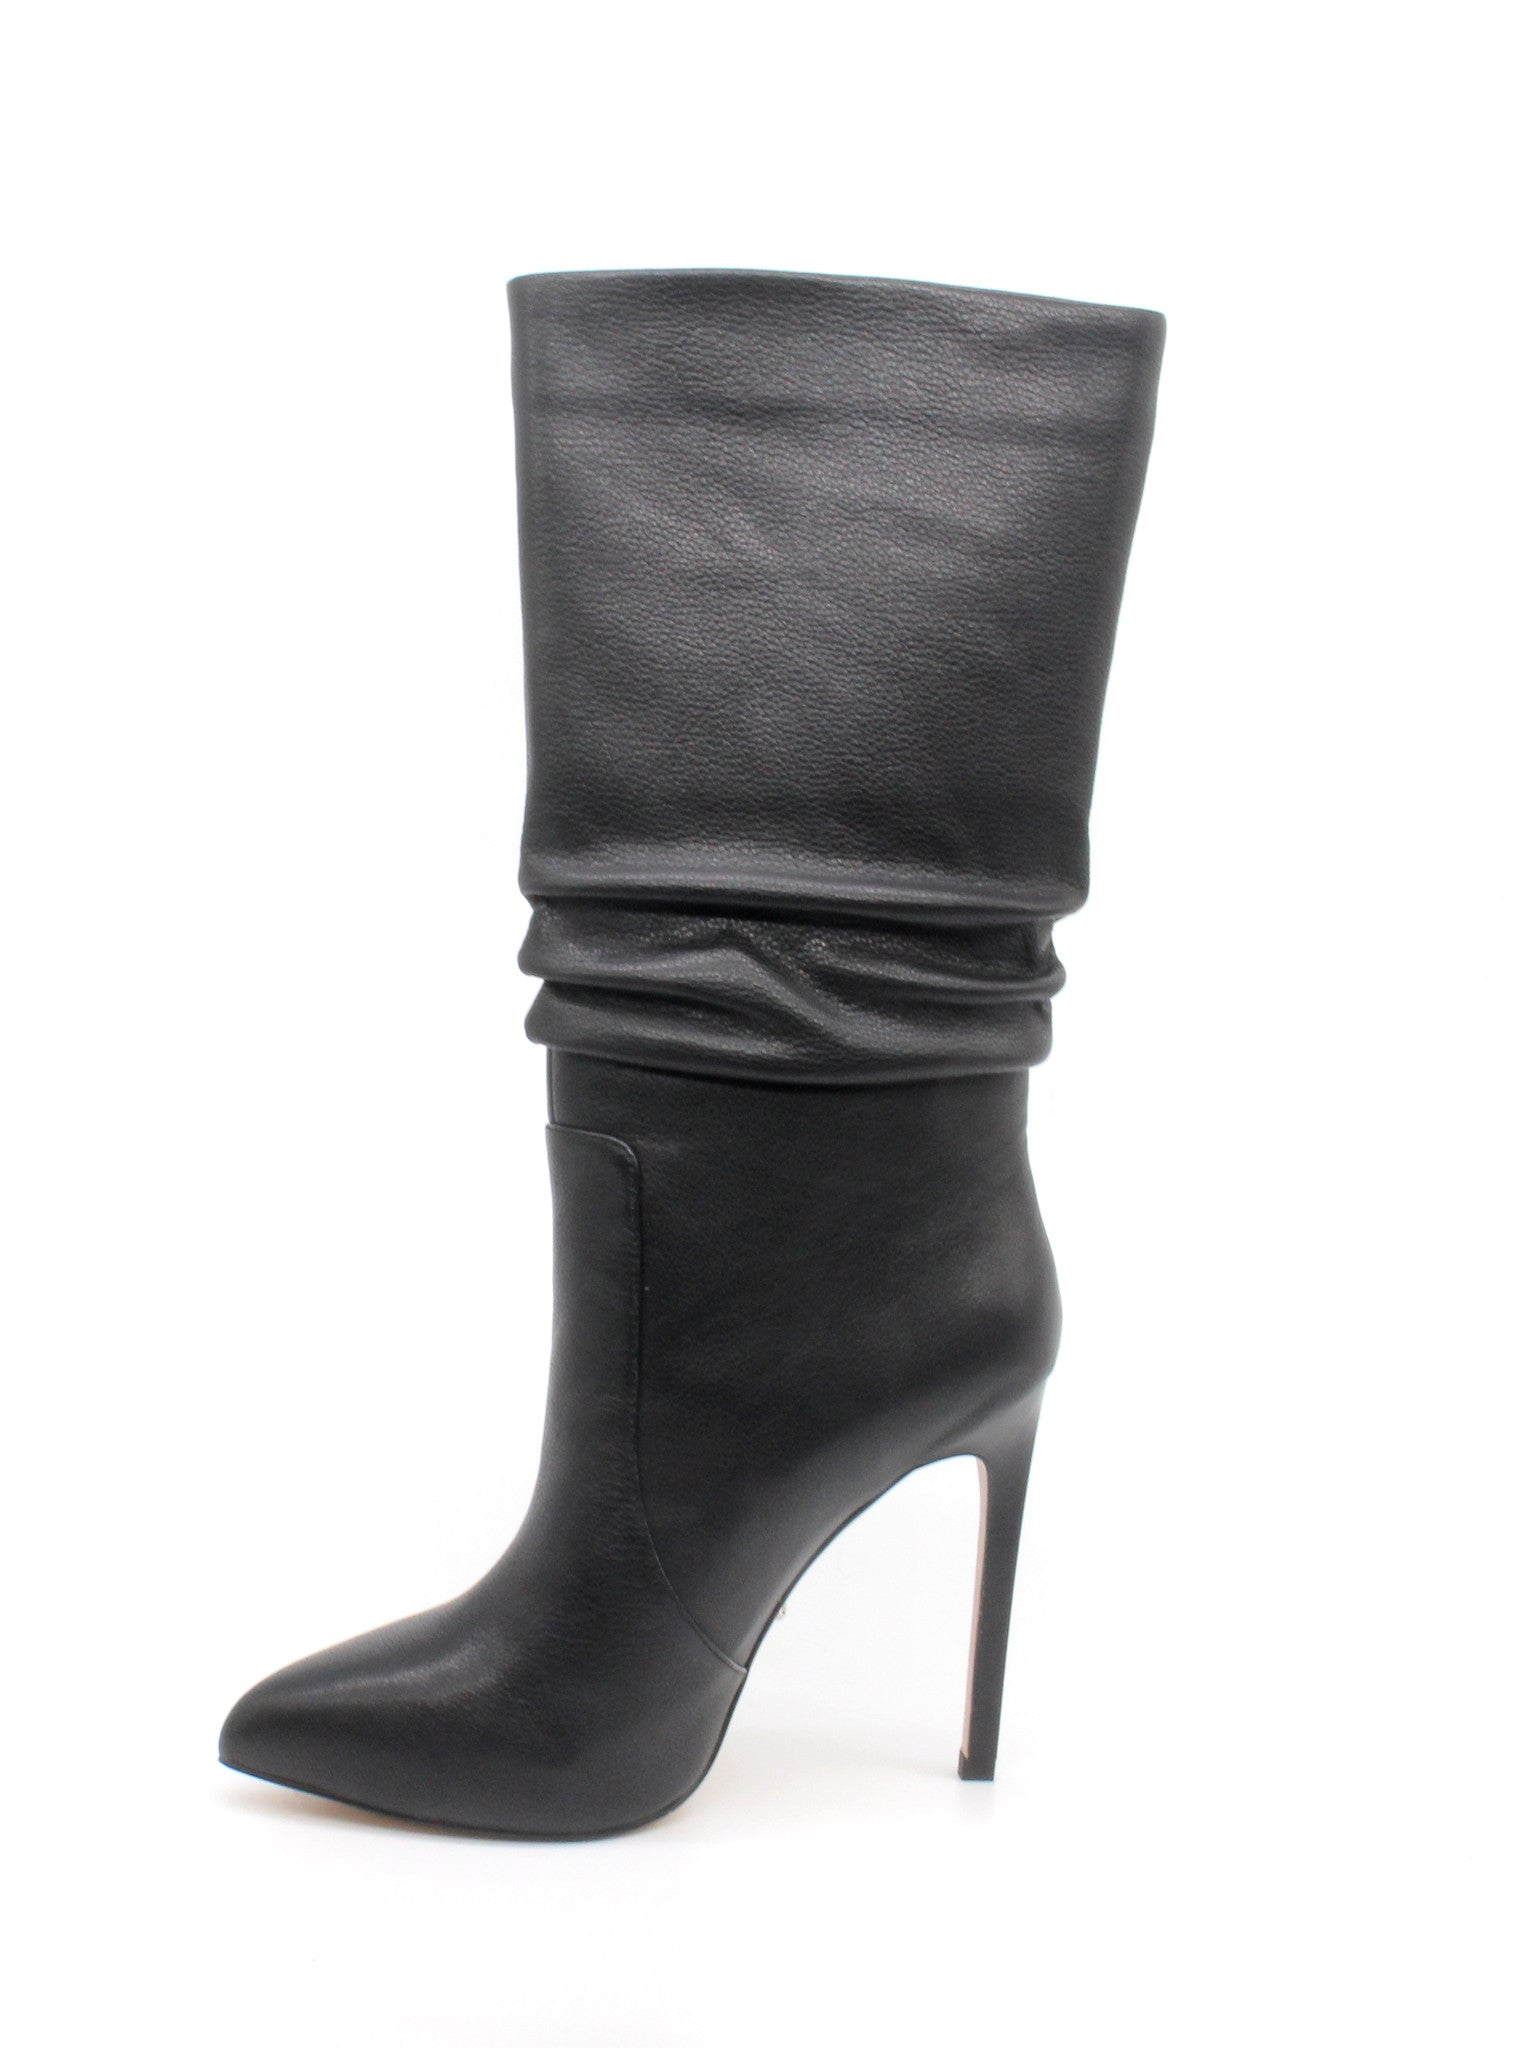 0b02fded7ac ... Black High Top Boots - 5 inch Leather Heels - Angelina Voloshina - AV  Heels -